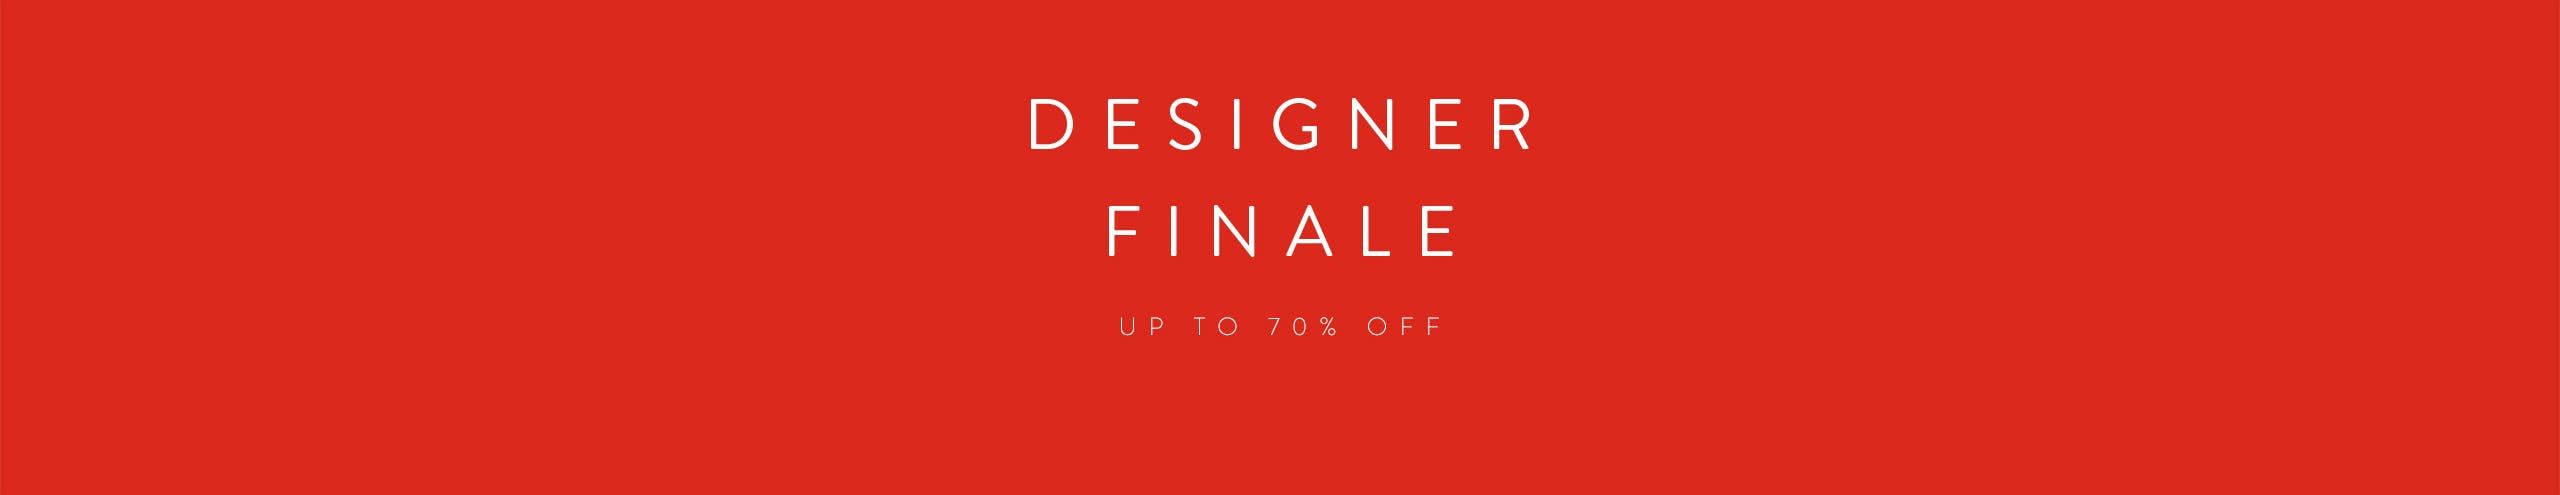 Women's Designer finale: up to 70% off.